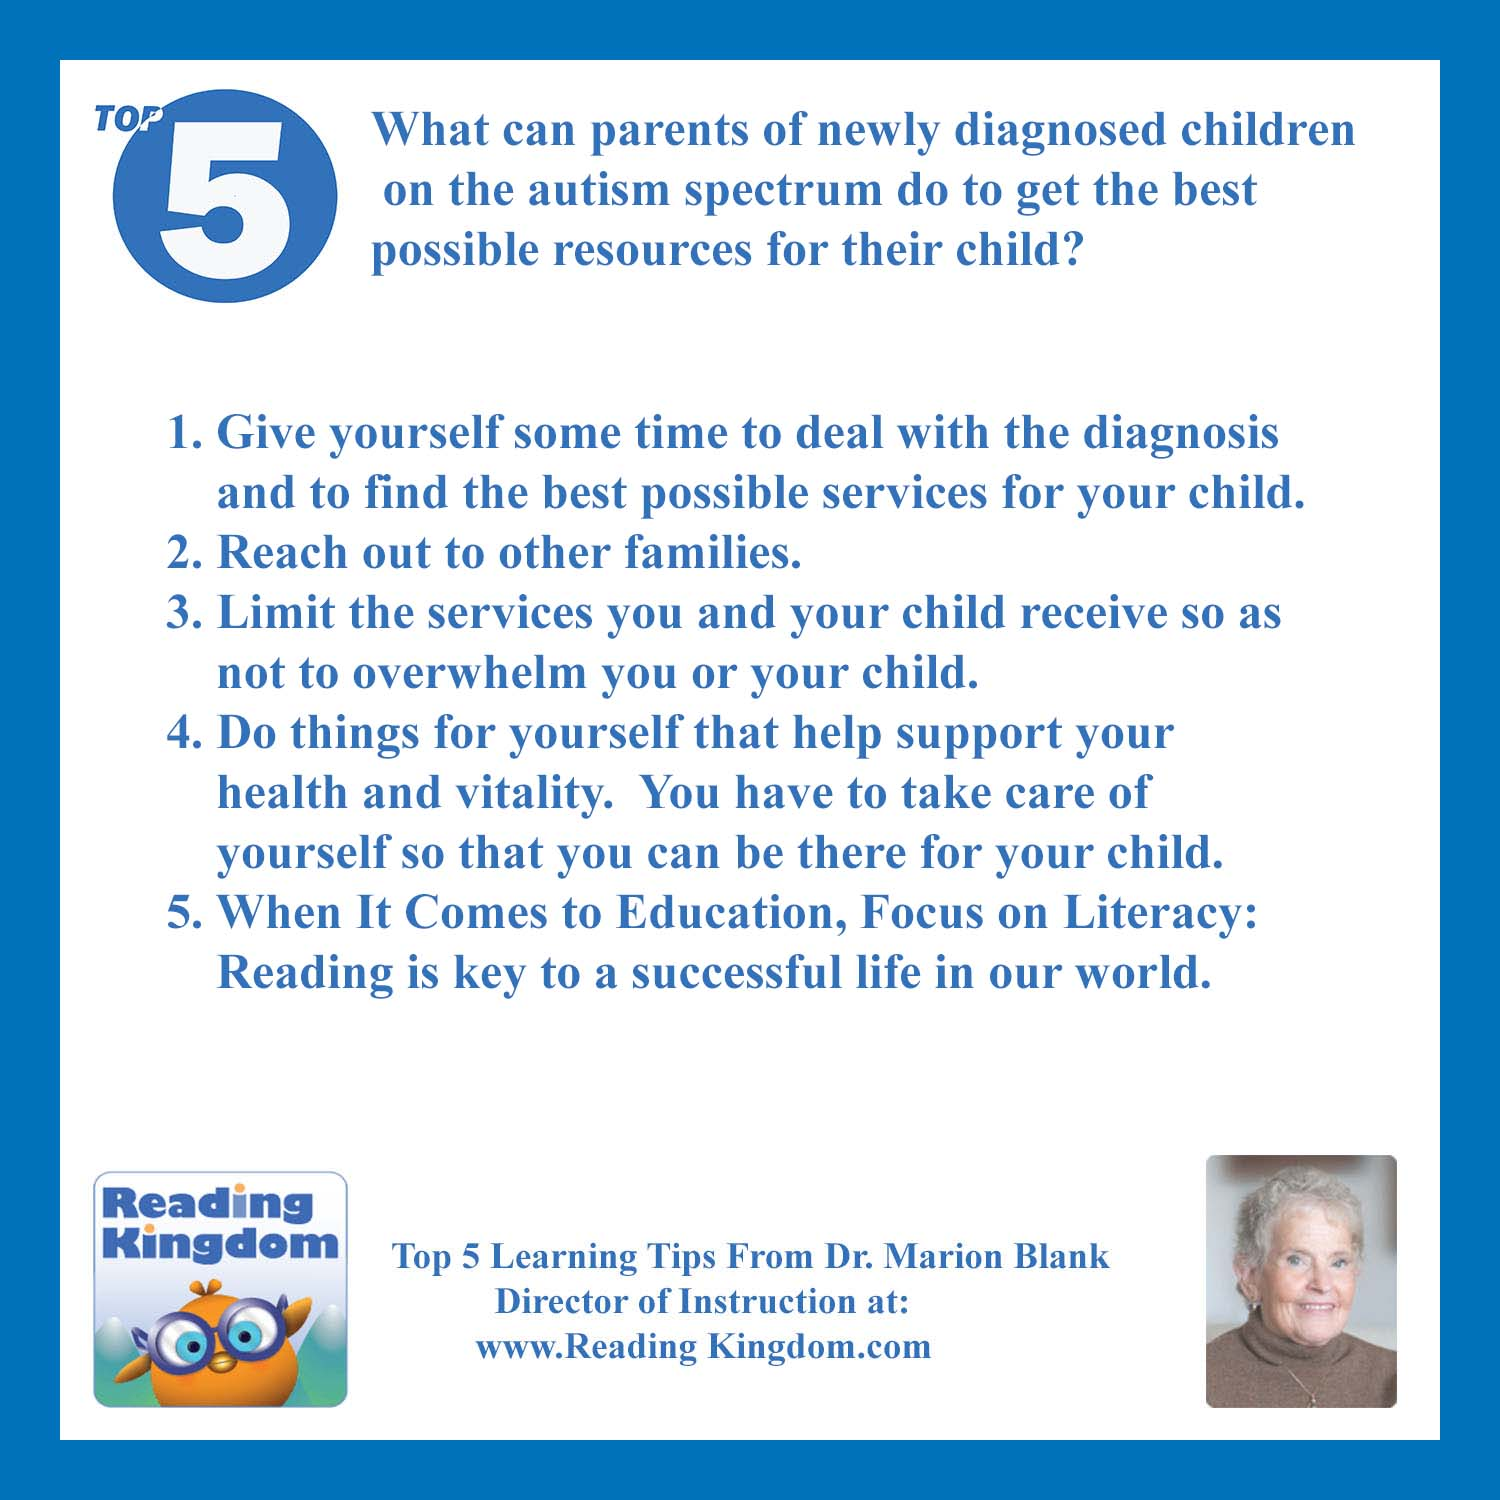 Ask Dr Blank What can parents of newly diagnosed children on the